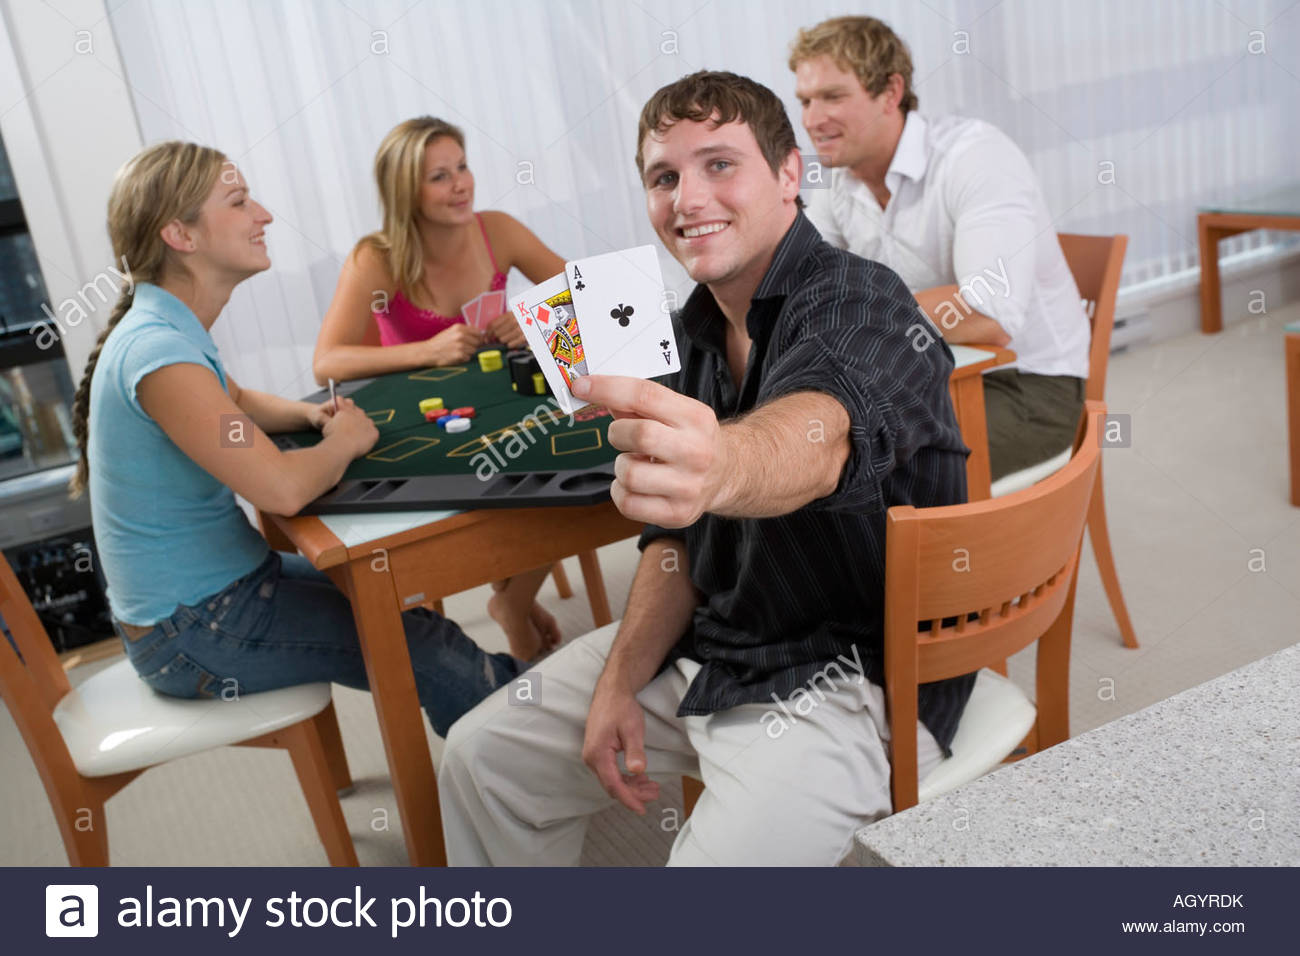 Man revealing blackjack hand - Stock Image